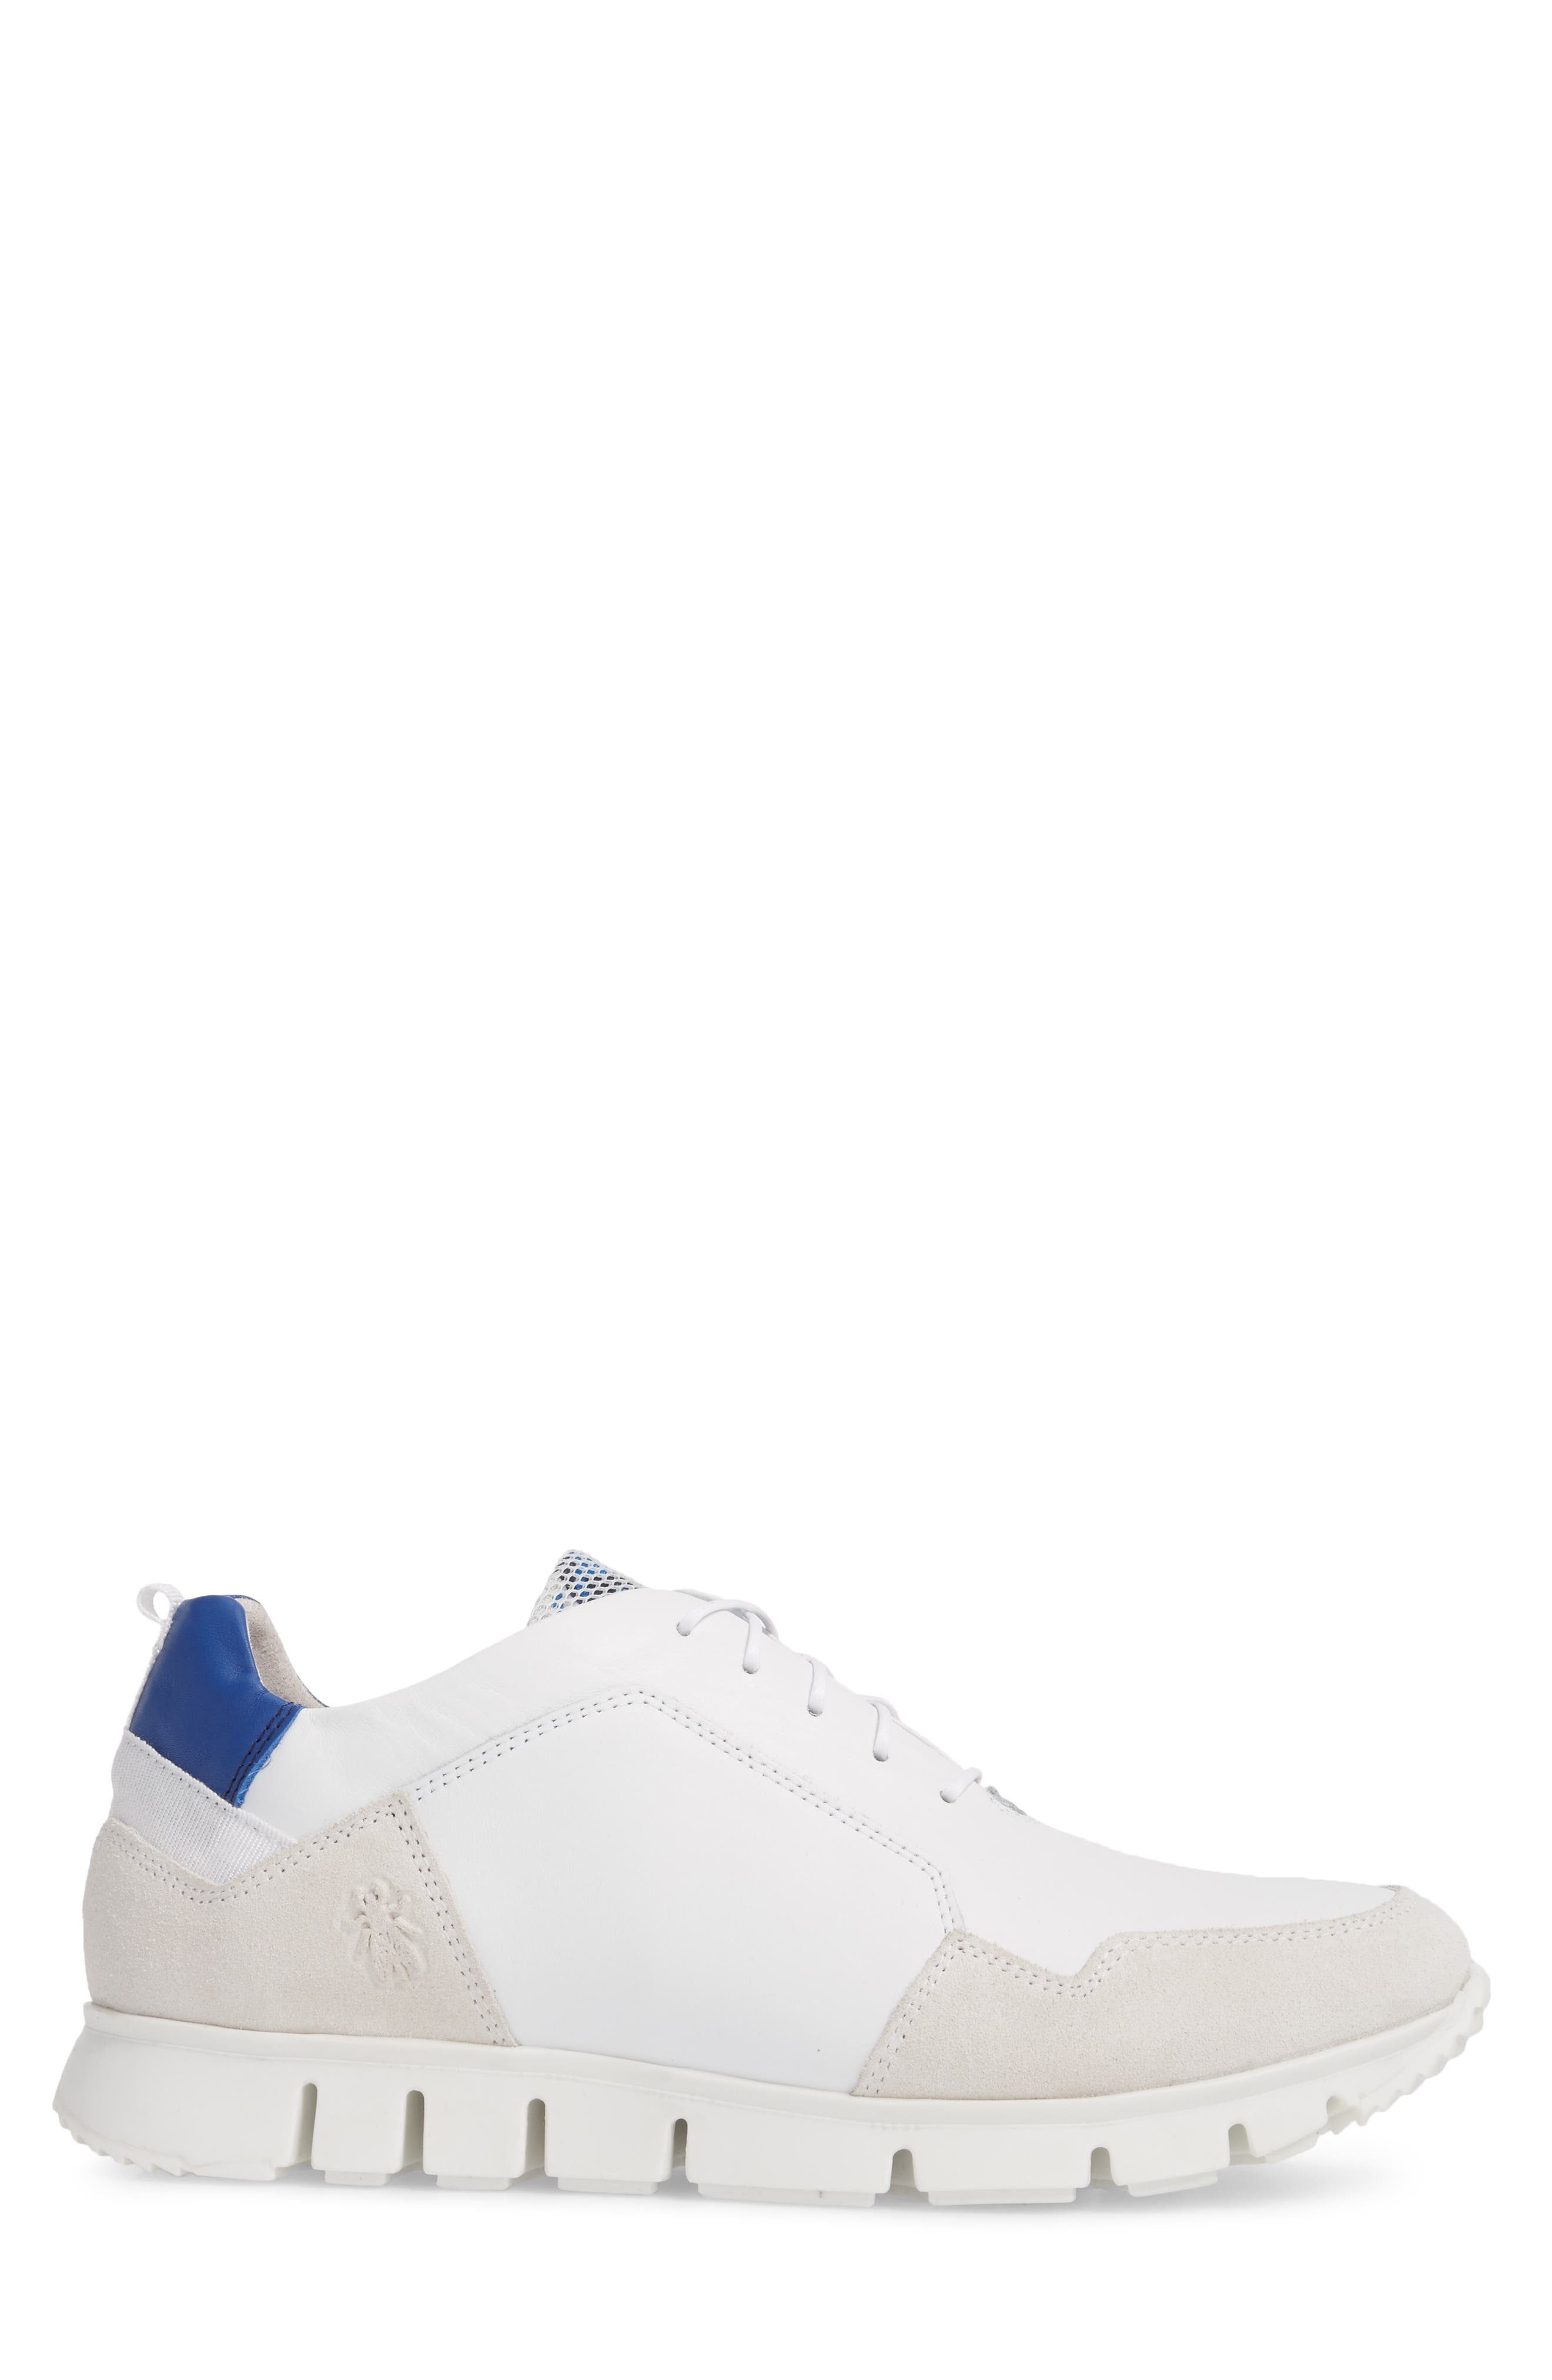 Sild Low Top Sneaker,                             Alternate thumbnail 3, color,                             WHITE SUEDE/ LEATHER